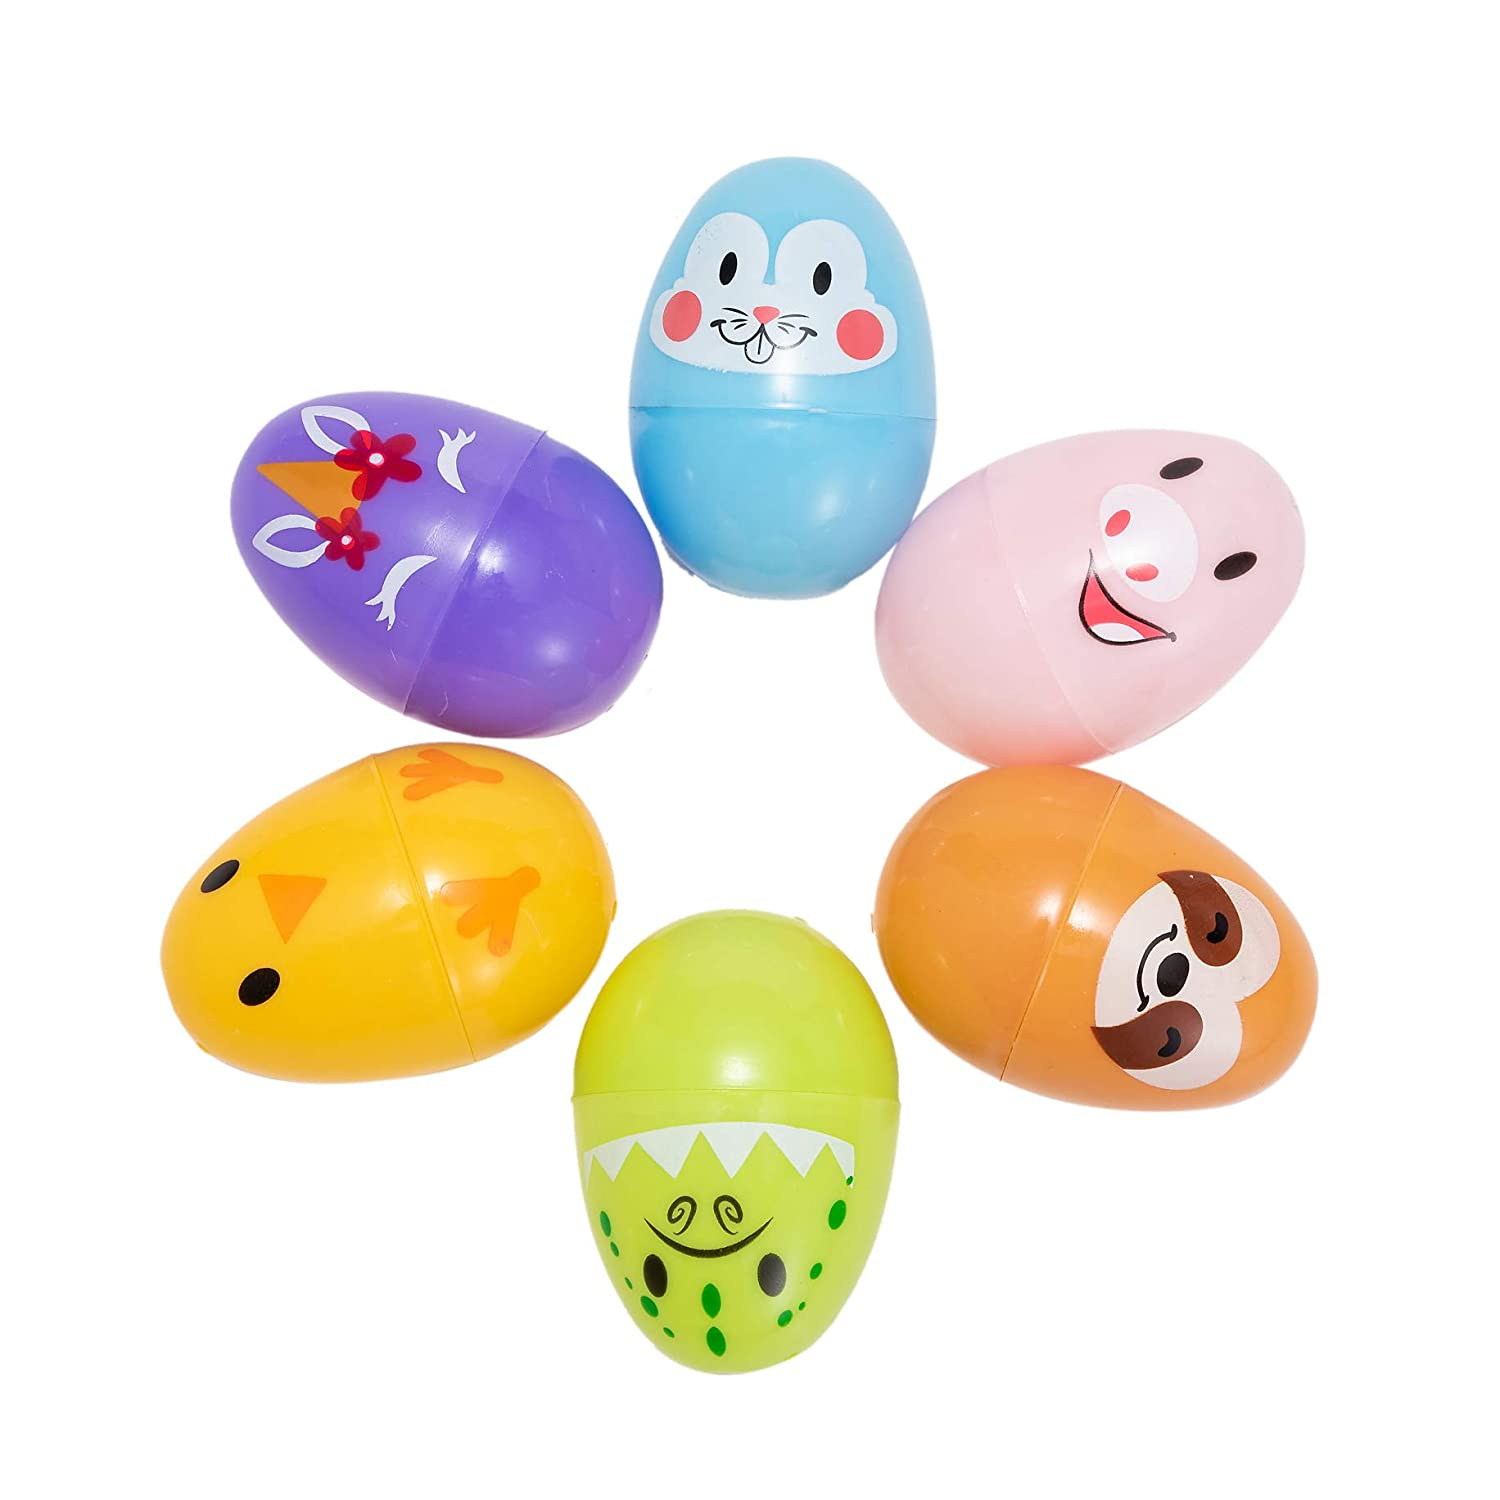 72 Pcs Animal Decorated Easter Egg